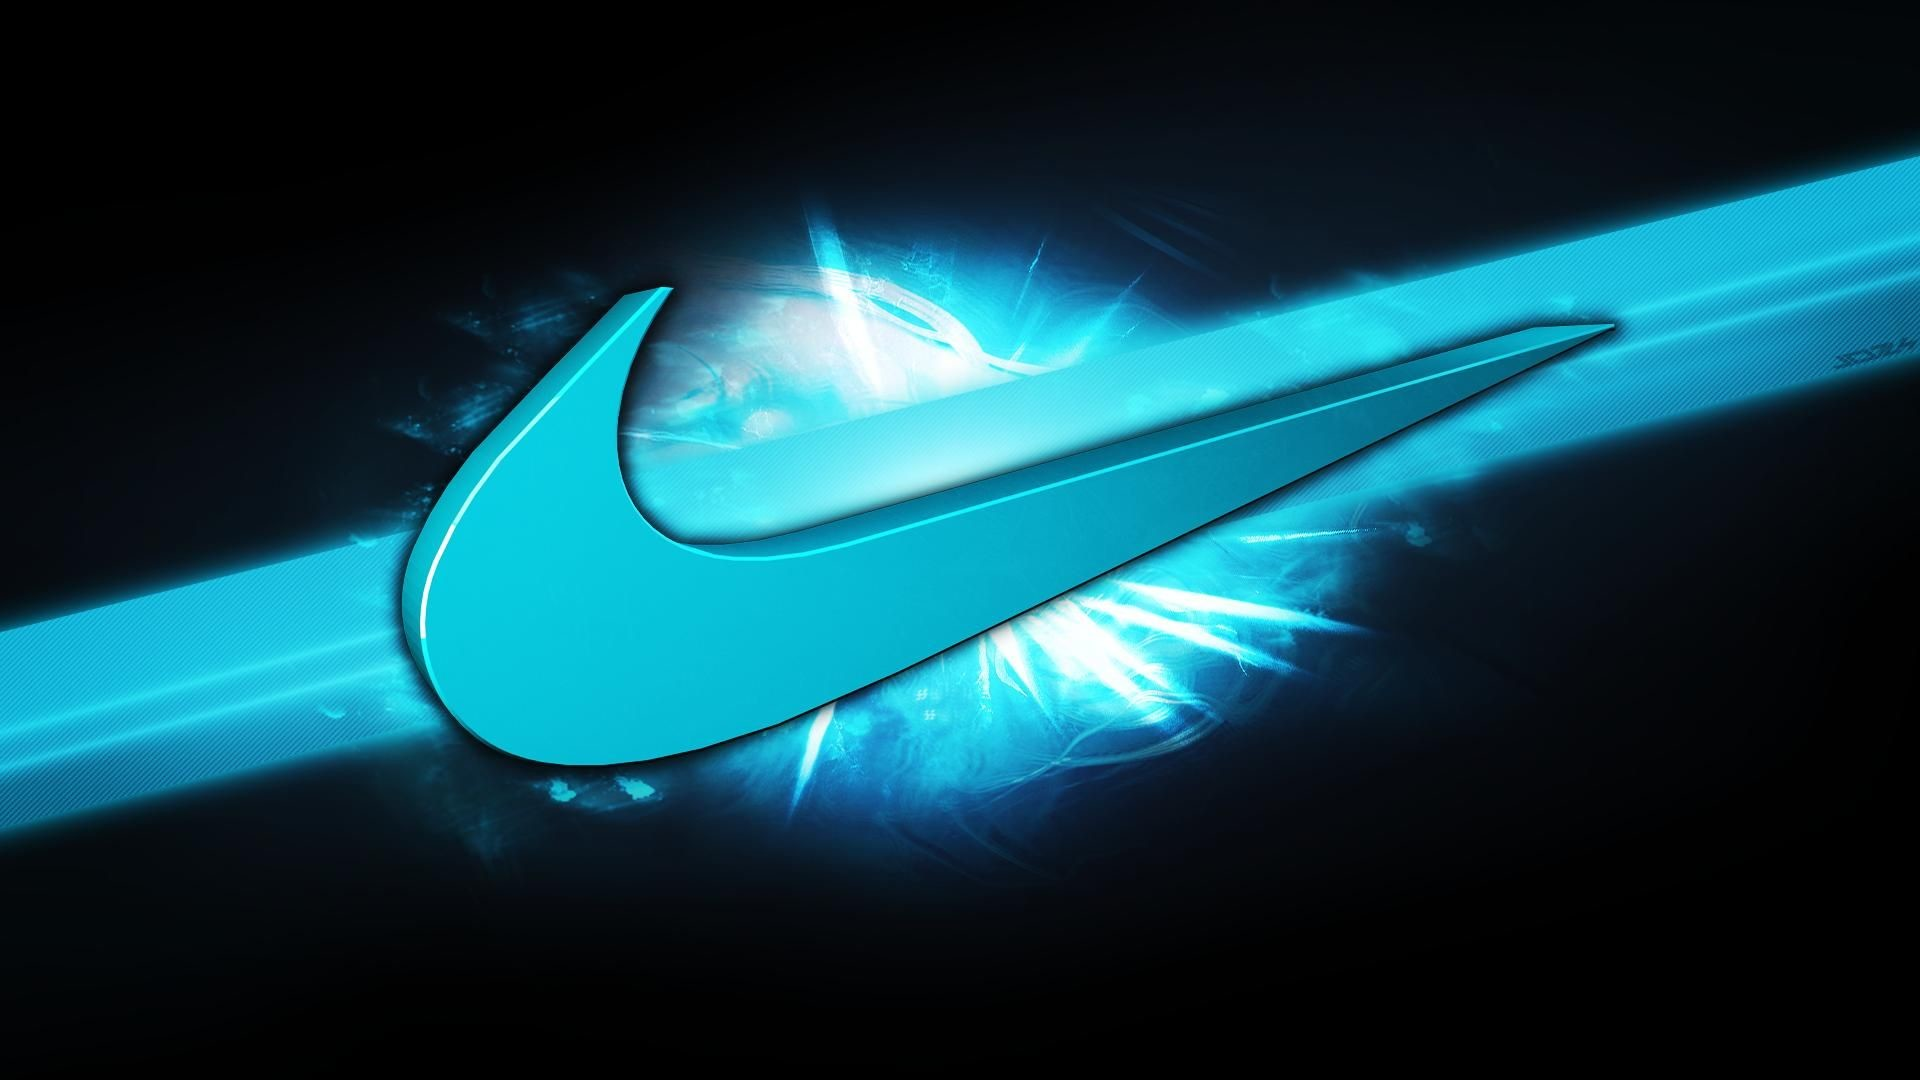 Res: 1920x1080, Cool Nike Backgrounds Wallpaper 750×1334 Blue nike wallpaper (39 Wallpapers) | Adorable